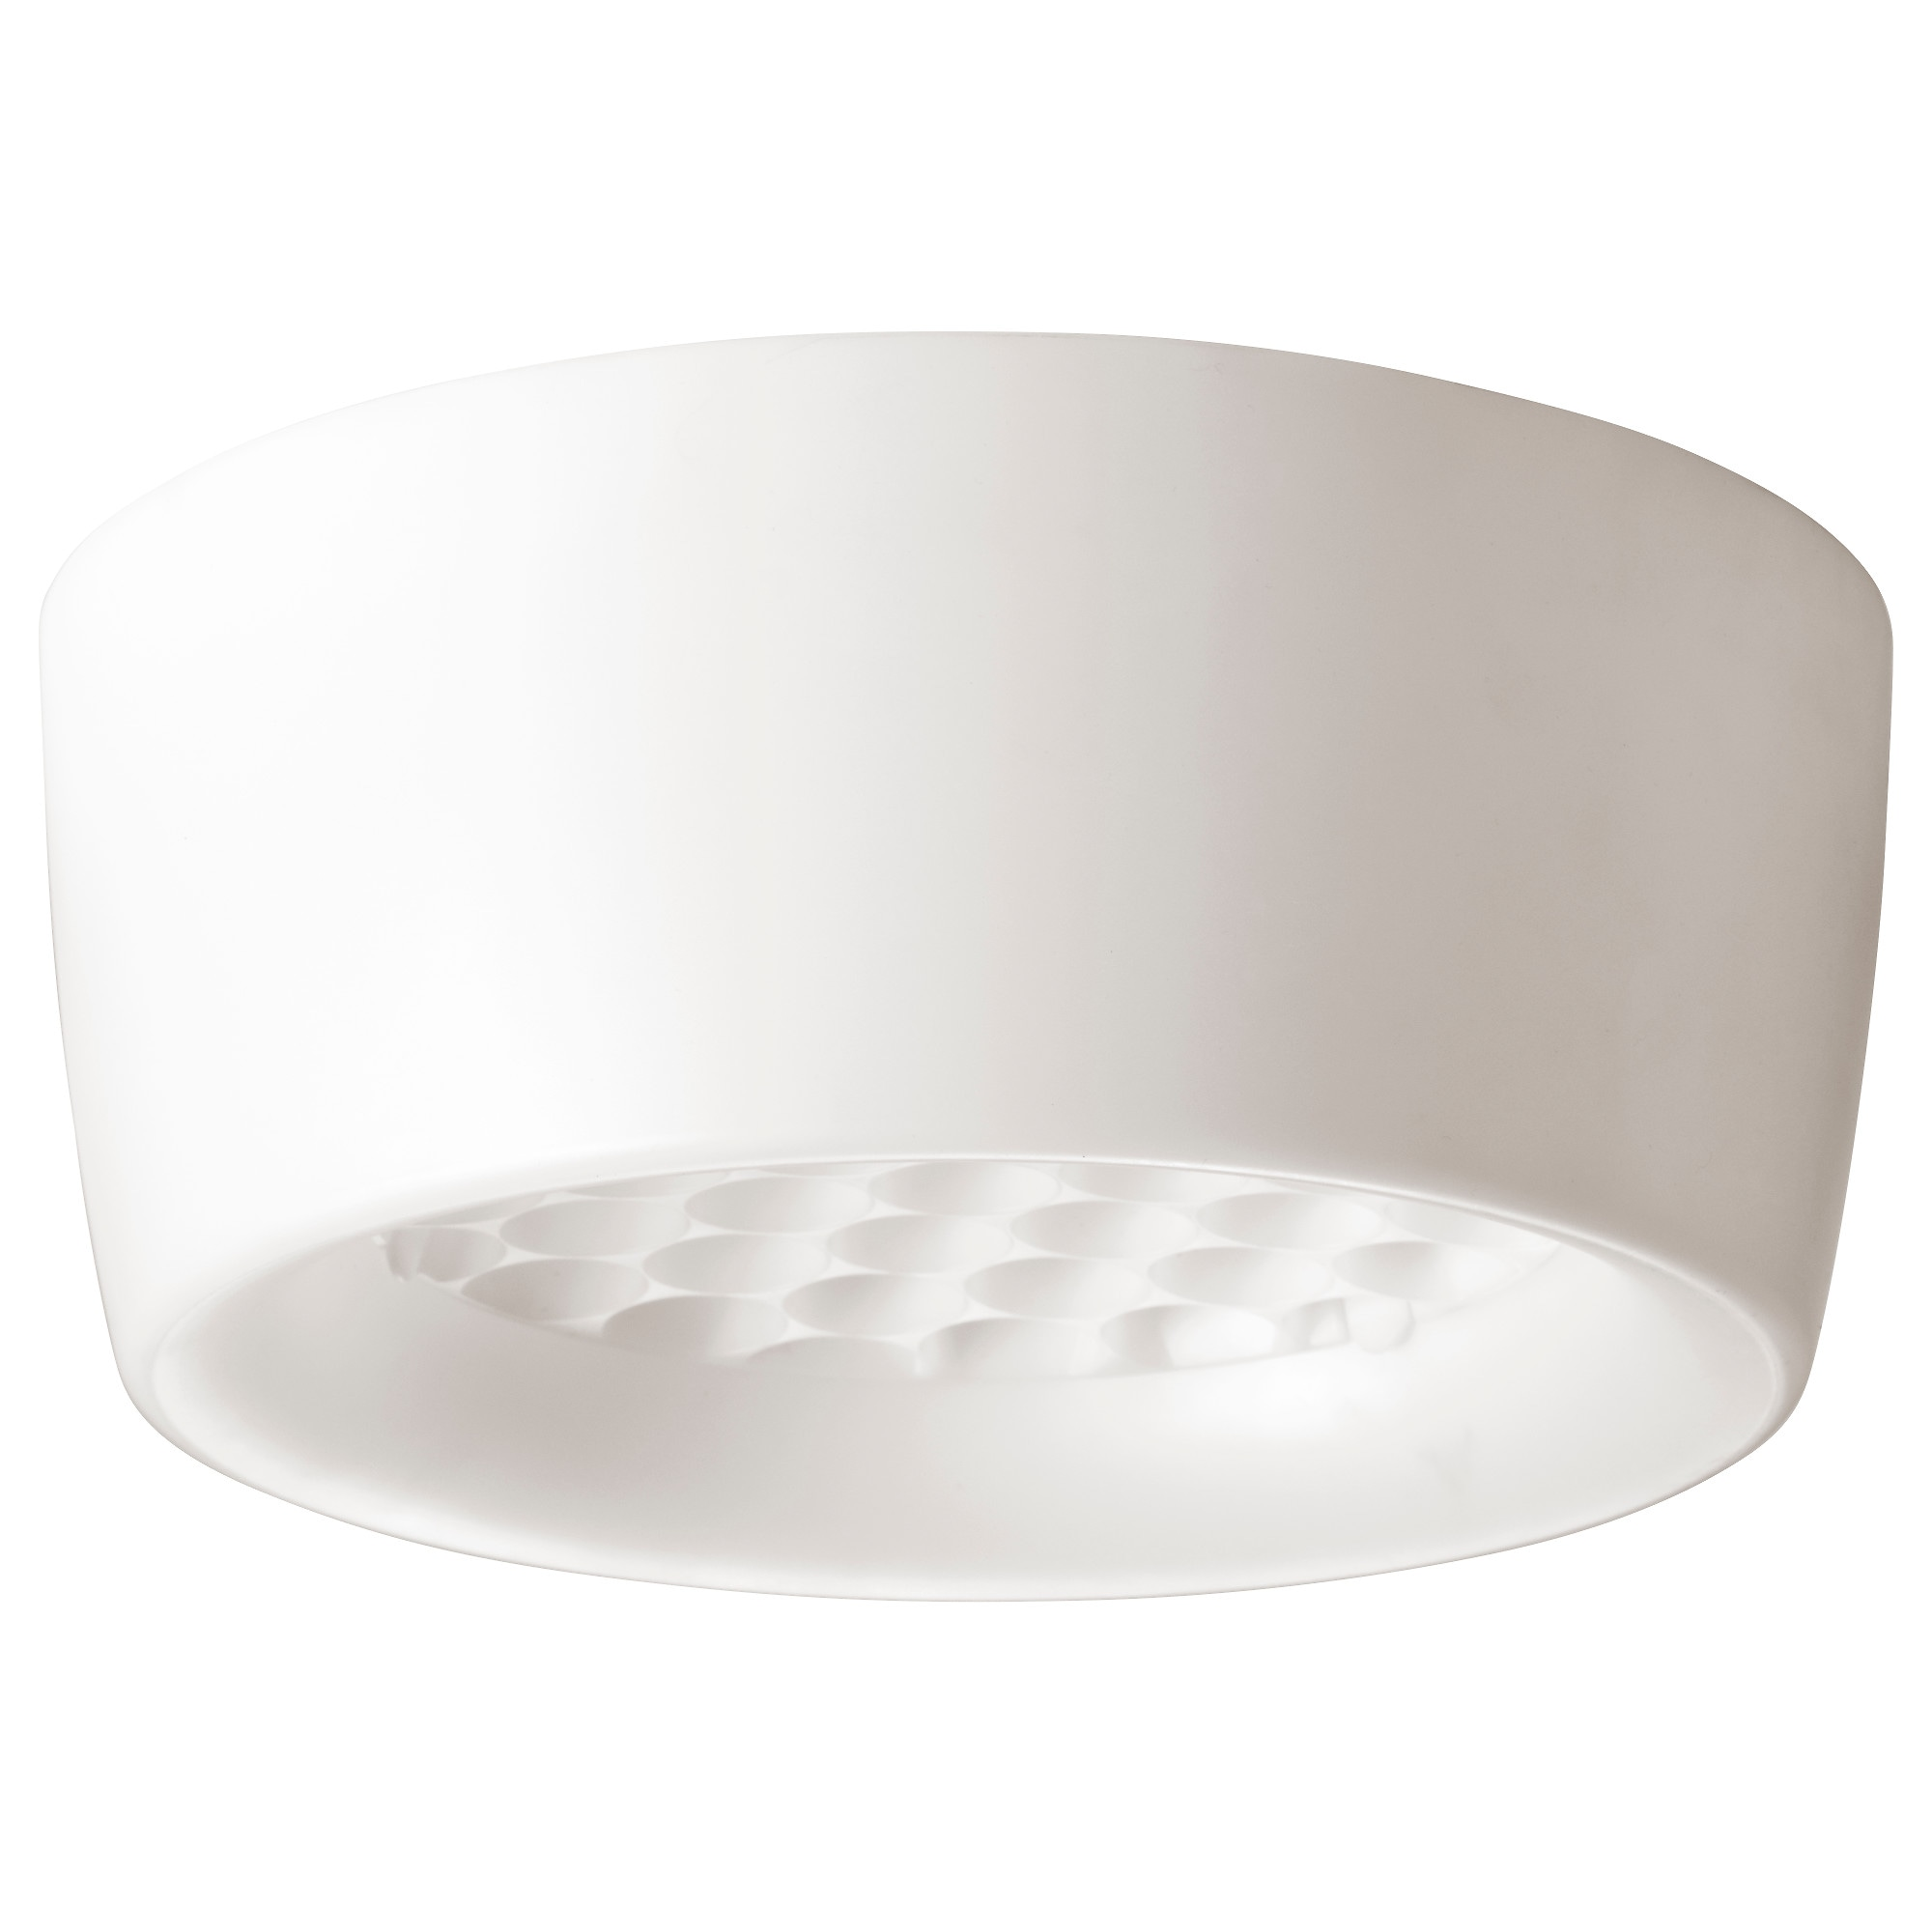 Ceiling lamps ikea mesosfr ceiling lamp max 13 w height 4 diameter 10 geotapseo Image collections